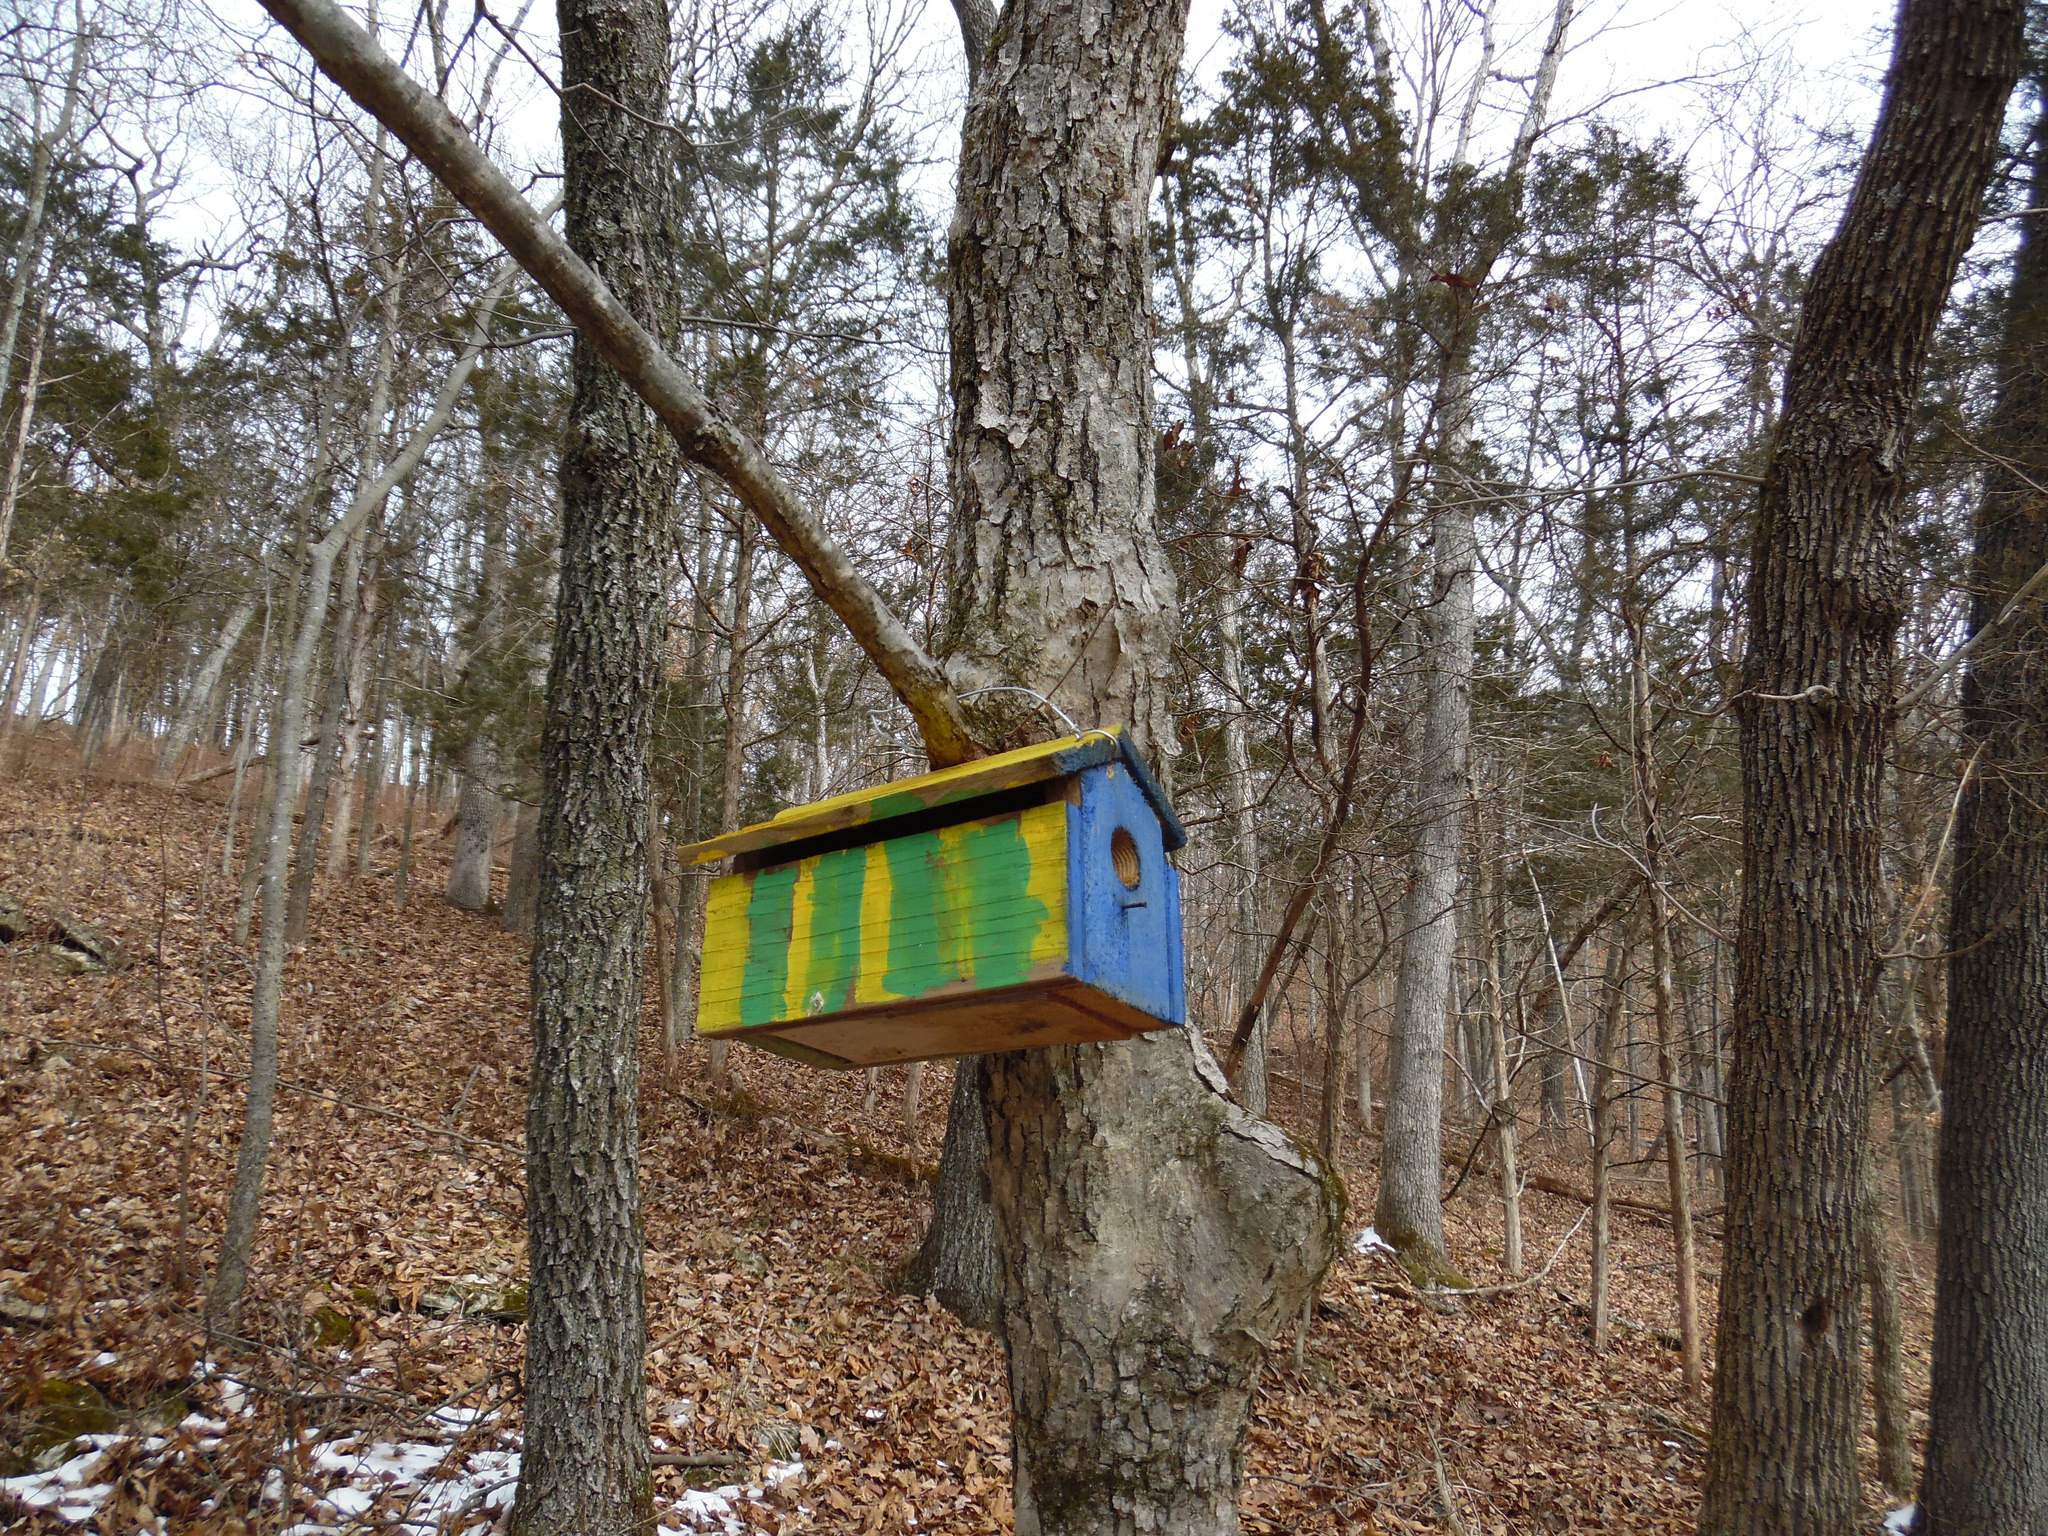 There were lots of these colorful little birdhouses at West Tyson and they were the only color we saw.